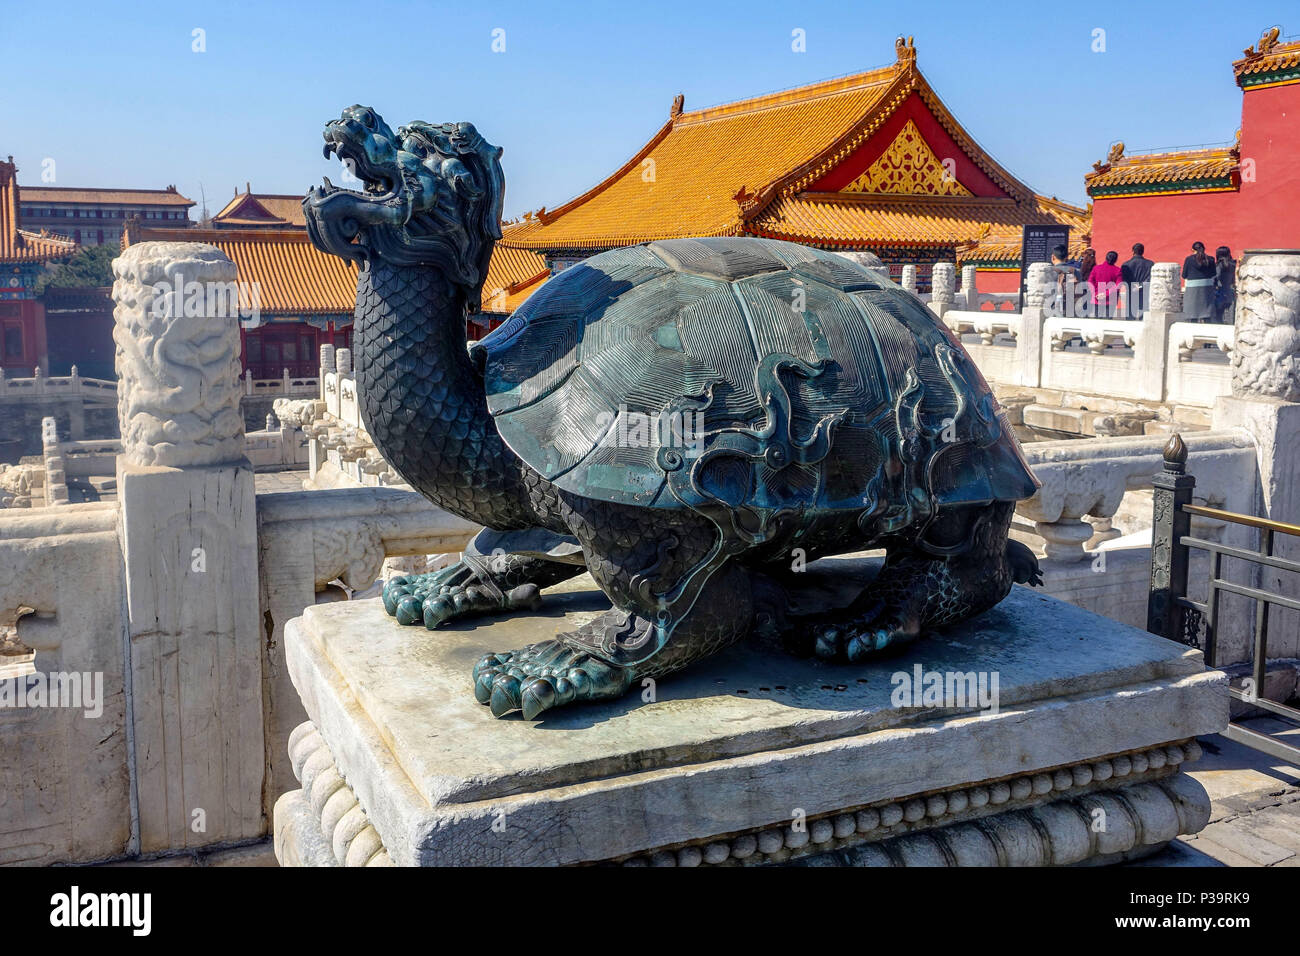 BEIJING, CHINA - MARCH 11, 2016: Forbidden City.  People visit the Forbidden city, it was the Chinese imperial palace from the Ming dynasty to the end - Stock Image